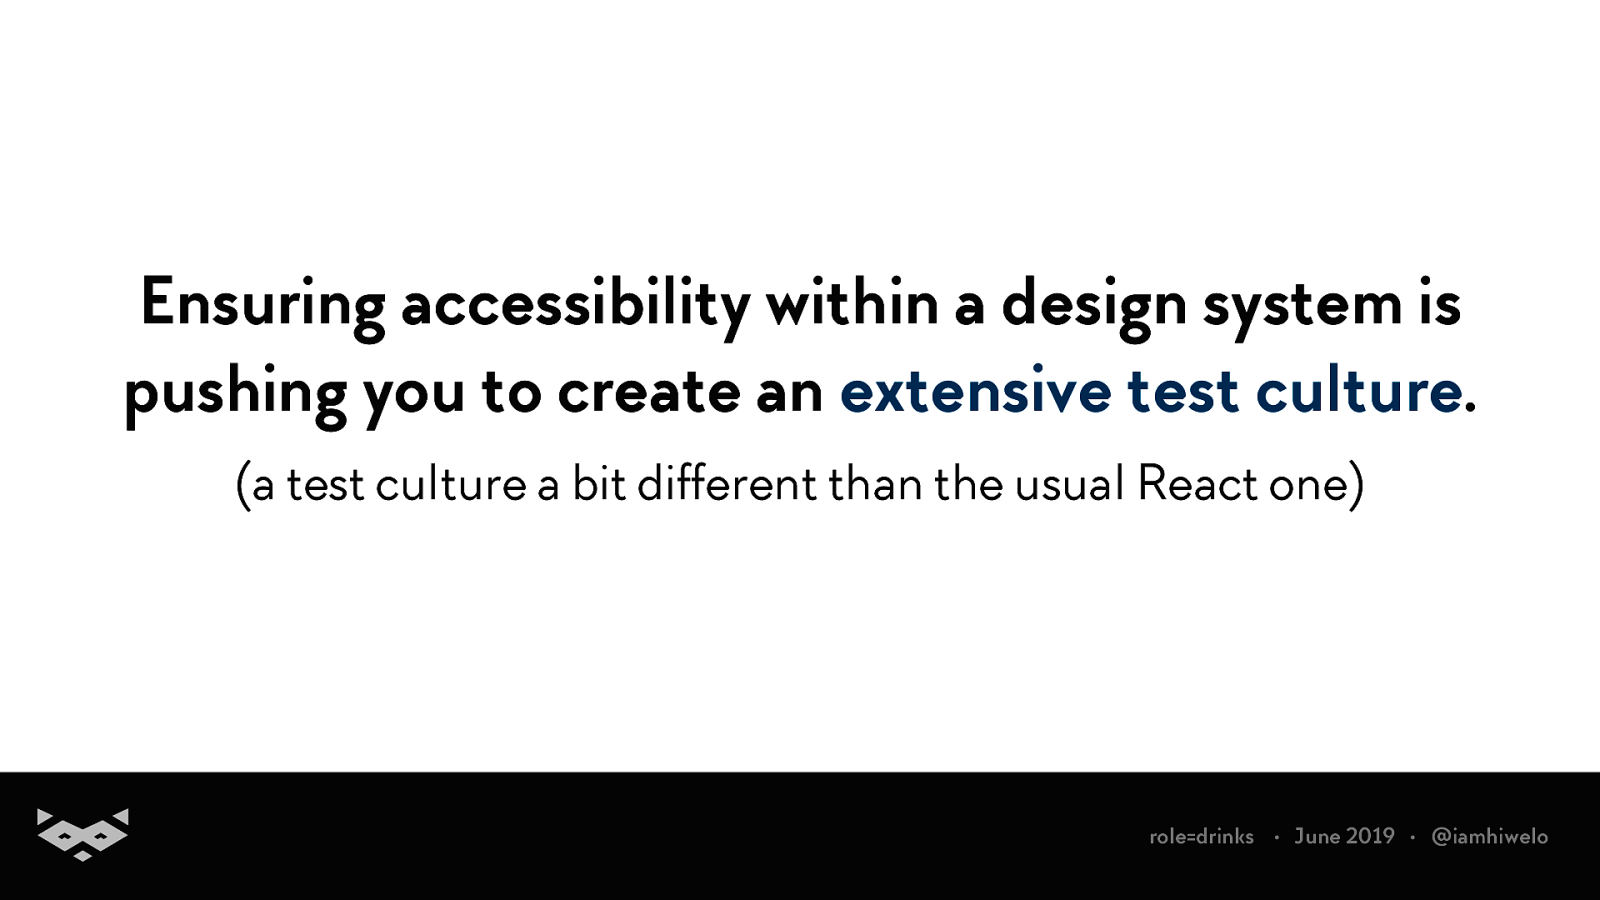 Design systems & Accessibility: the Good, the Bad and the